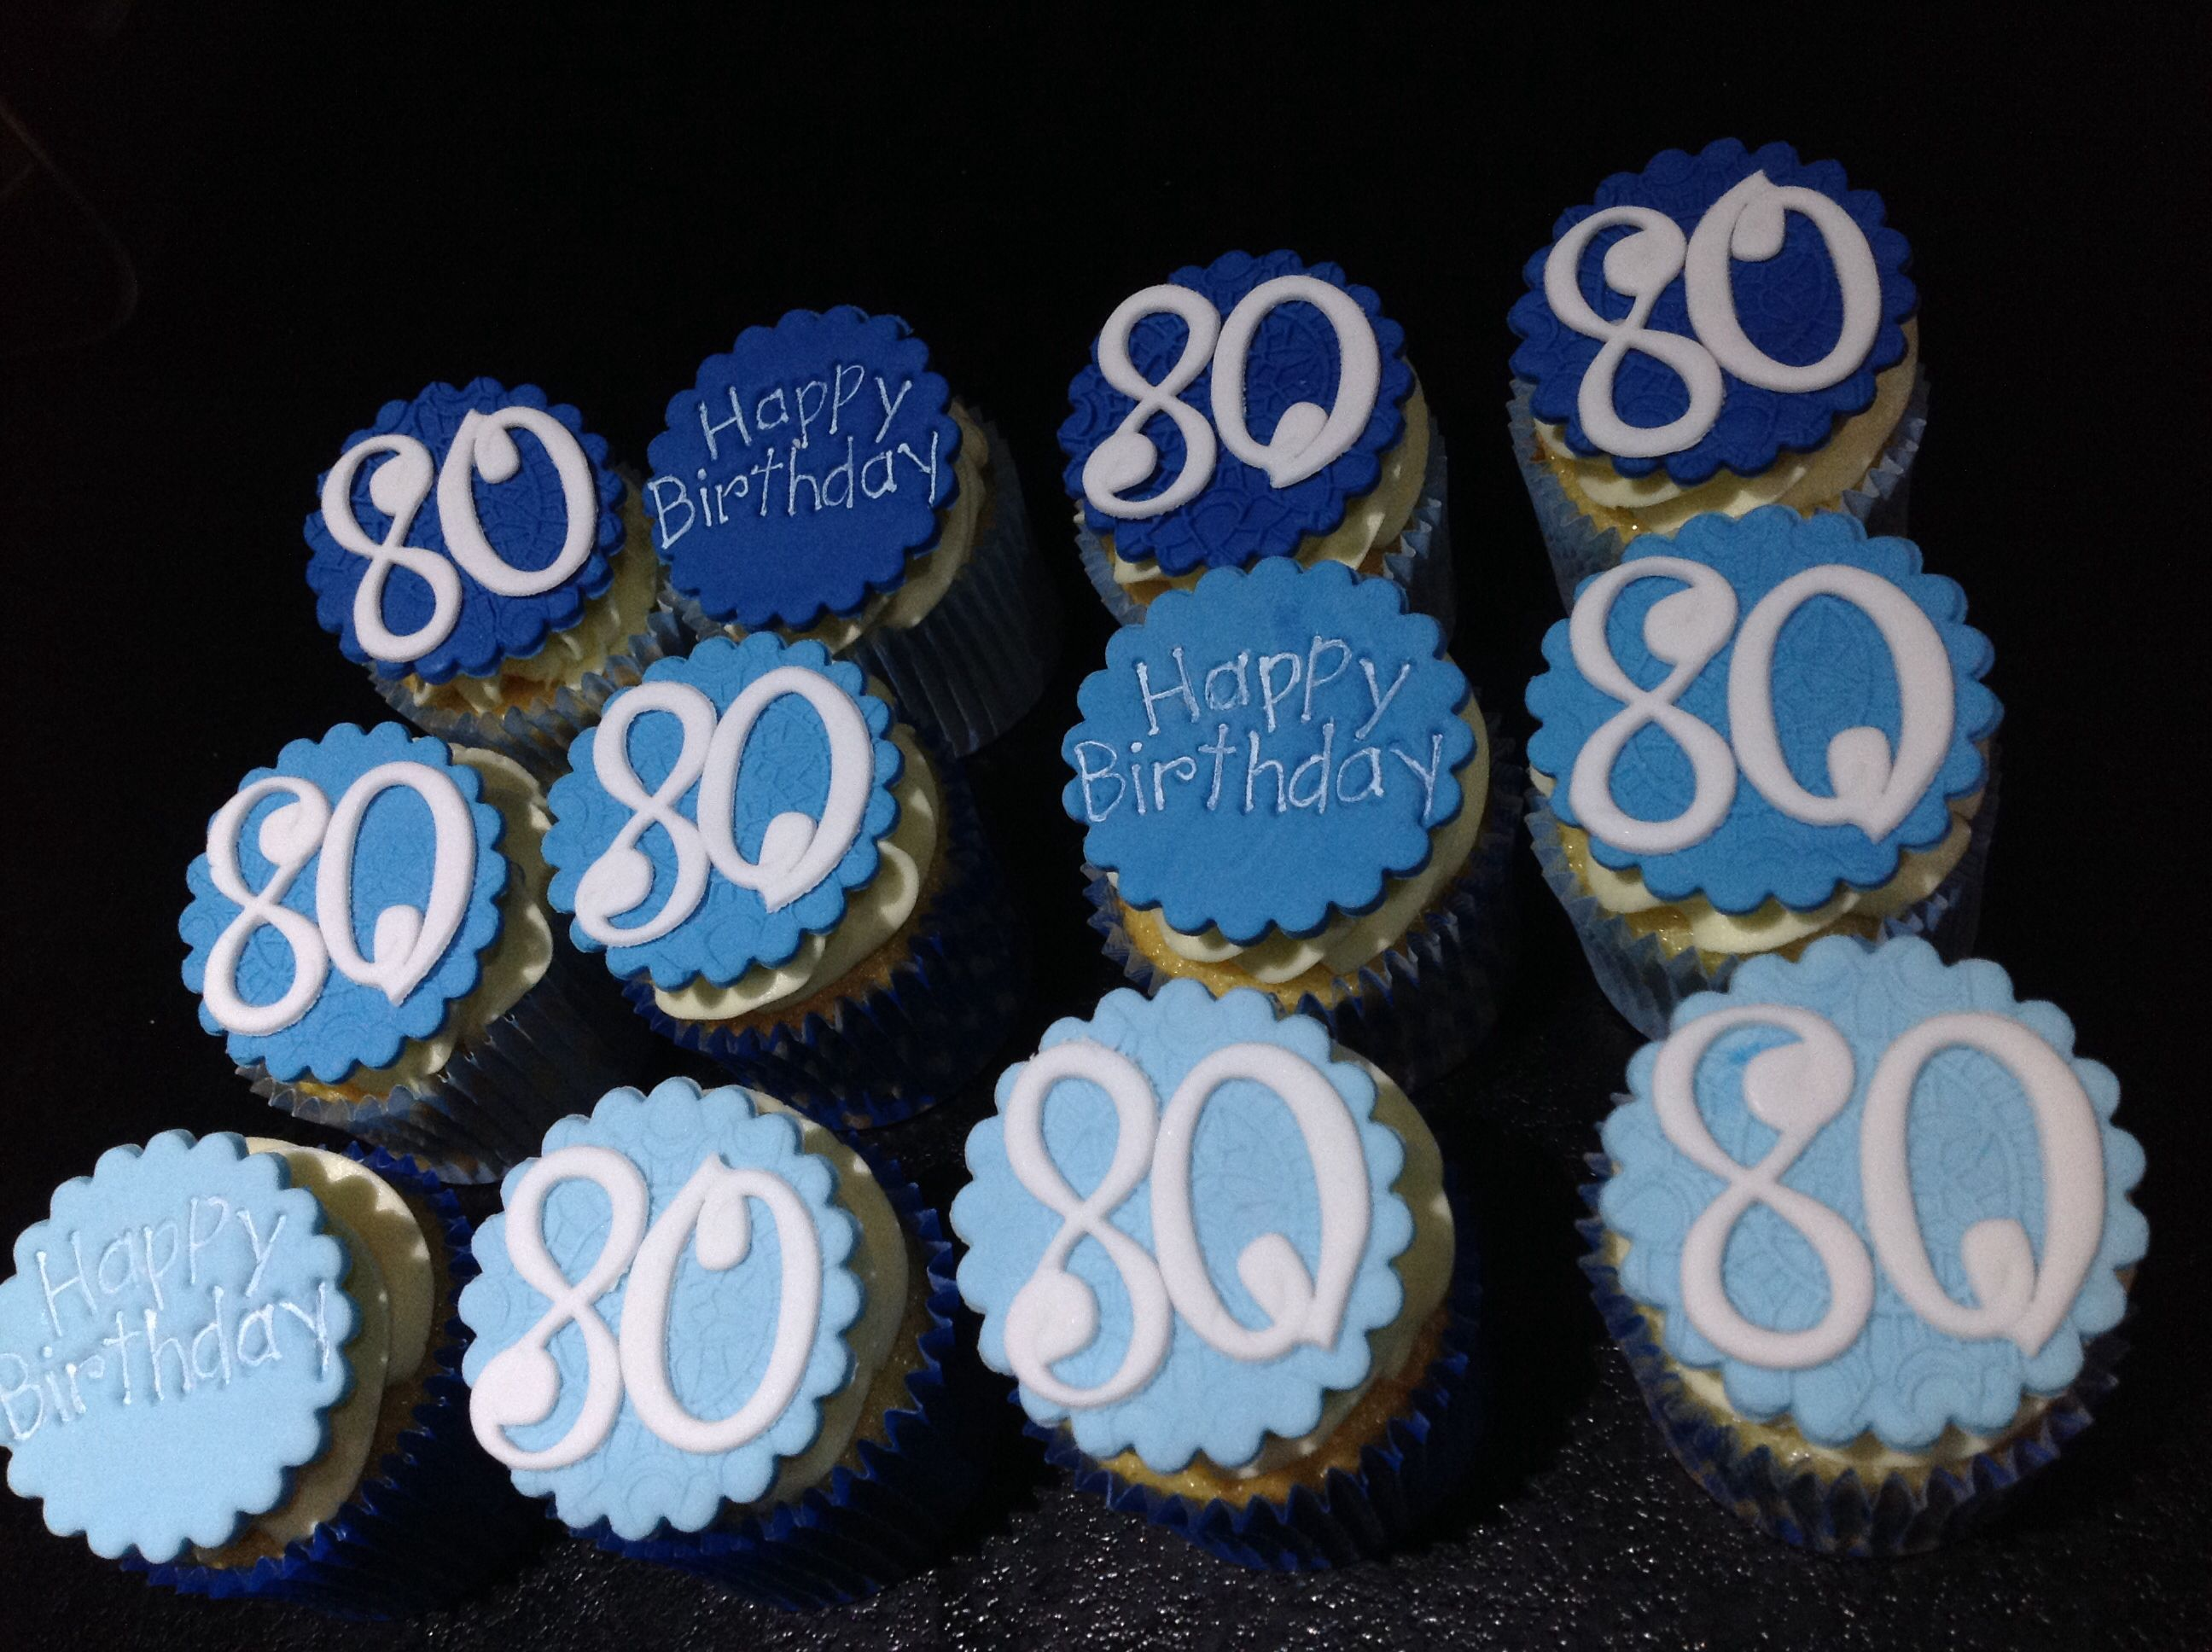 Astounding 80Th Birthday Cupcakes Birthday Cake Bakery Cupcake Birthday Personalised Birthday Cards Rectzonderlifede